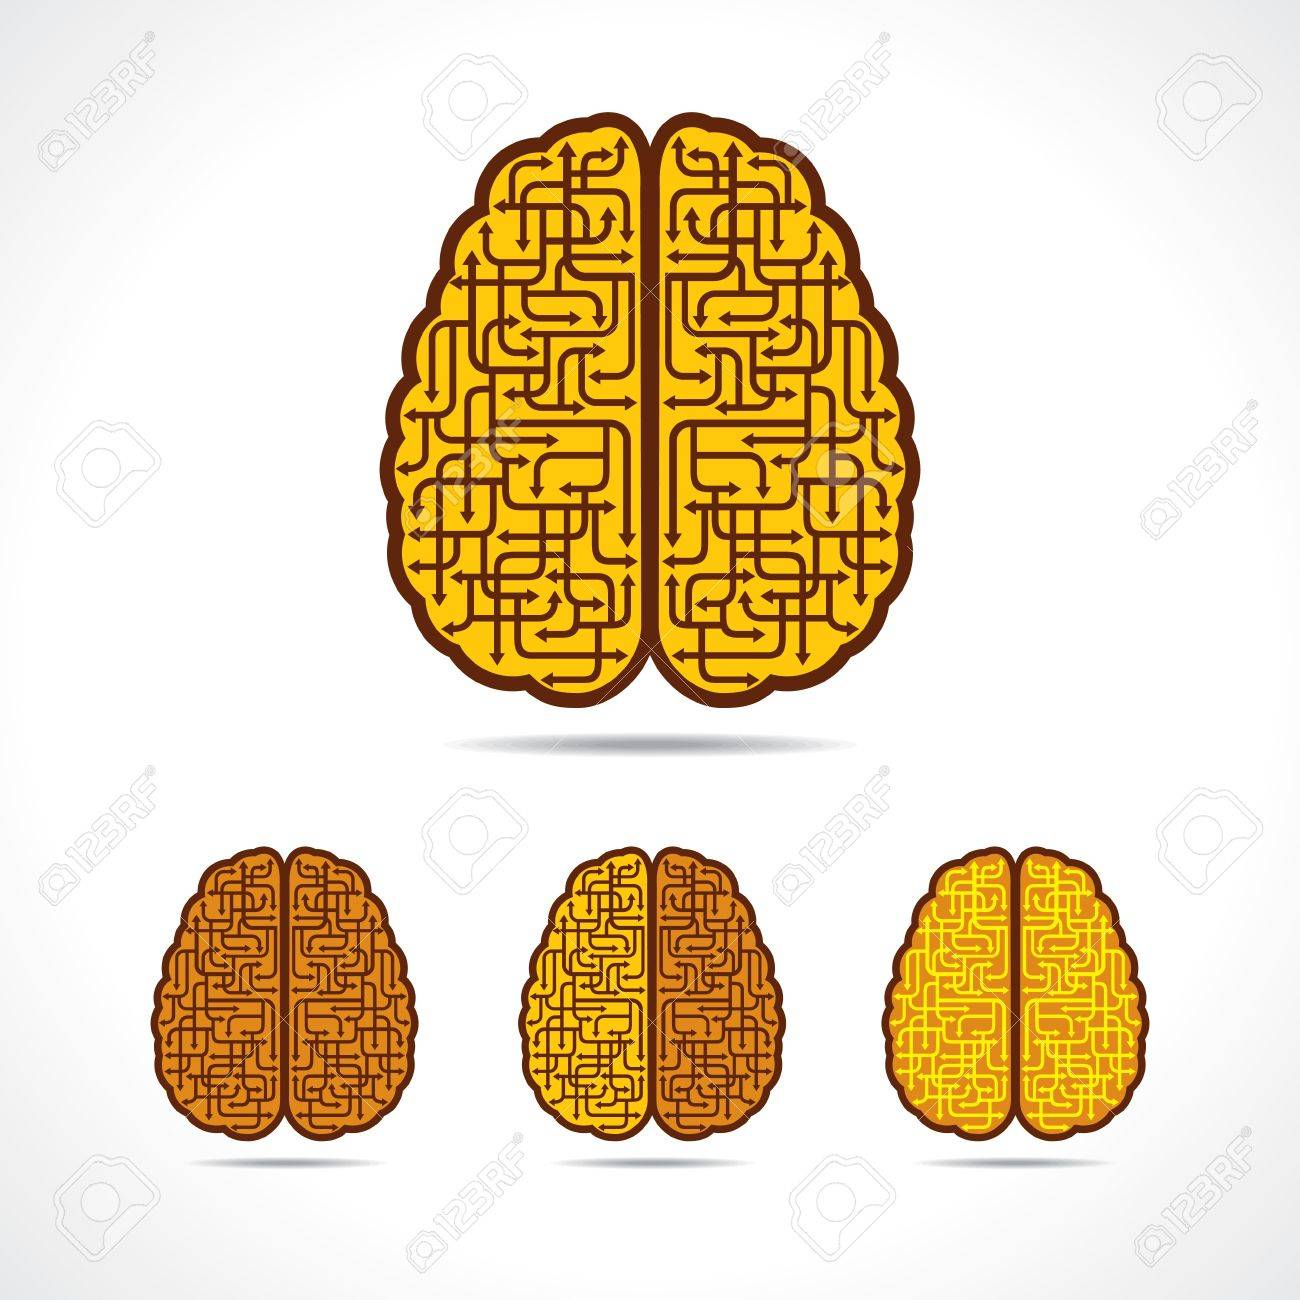 Differnt illustration of Brain forming of  arrows Stock Vector - 20775805